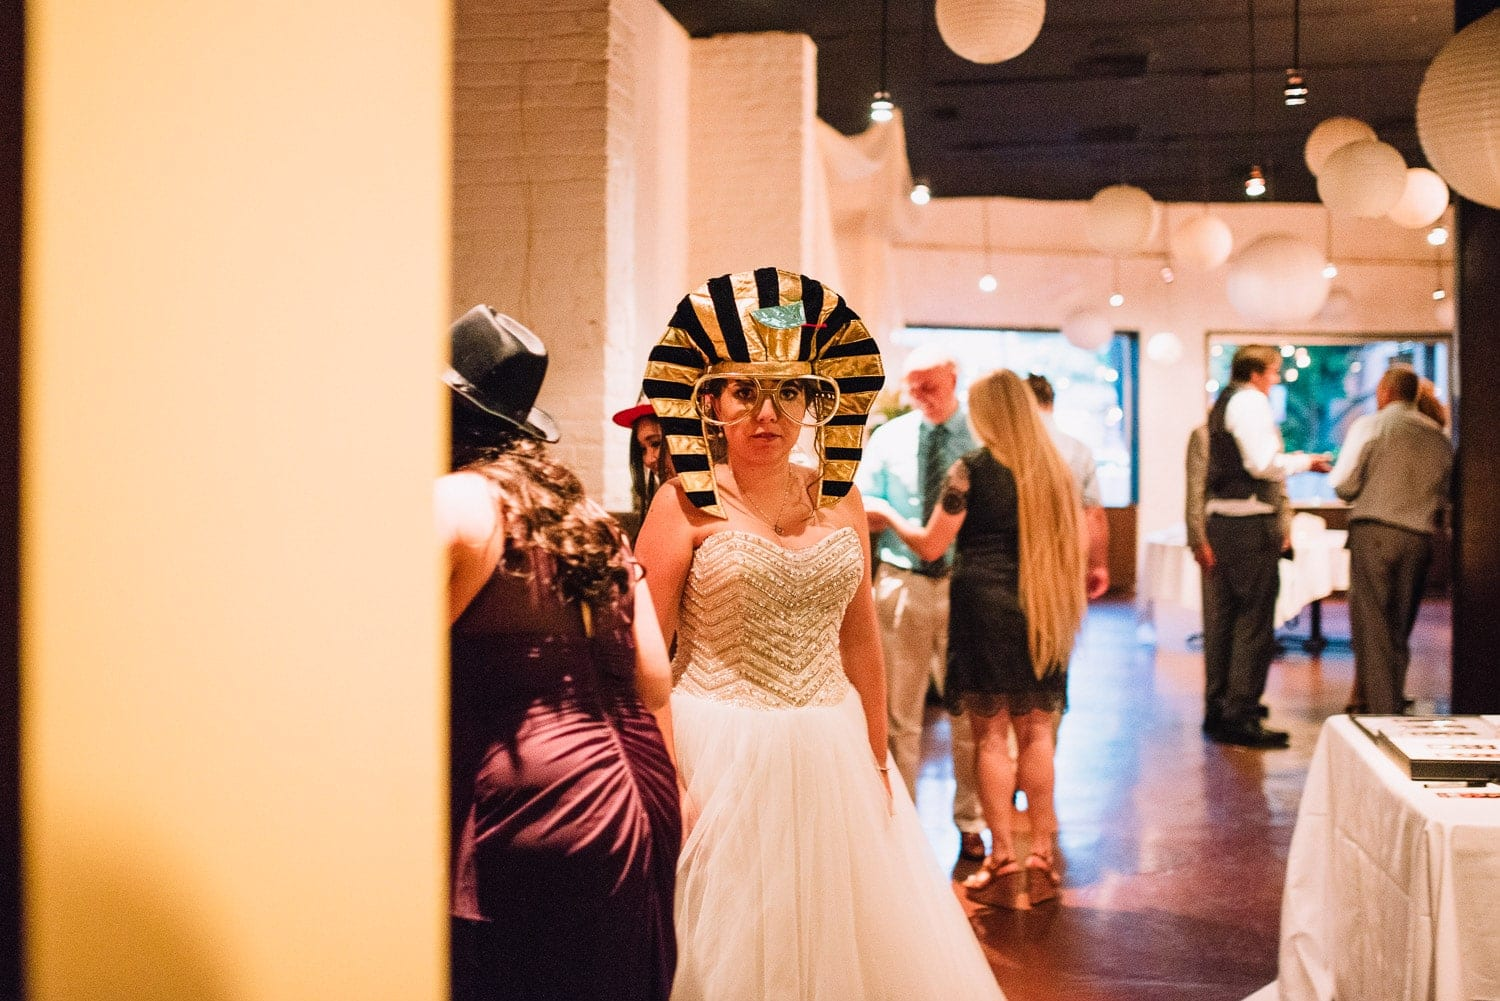 The bride is wearing an Egyptian pharaoh costume for a Photo Booth picture.